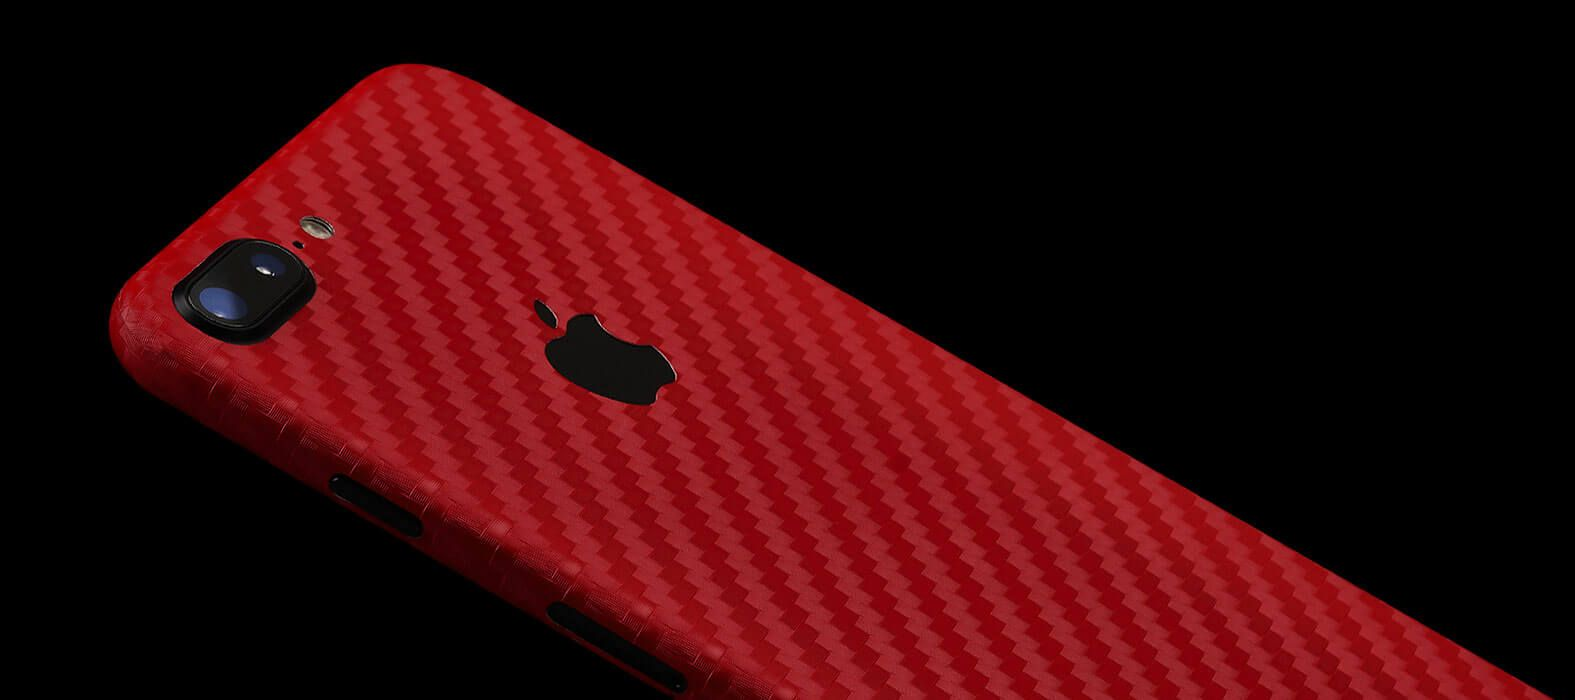 iPhone 7 Plus red Carbon Fiber Skins & Wraps